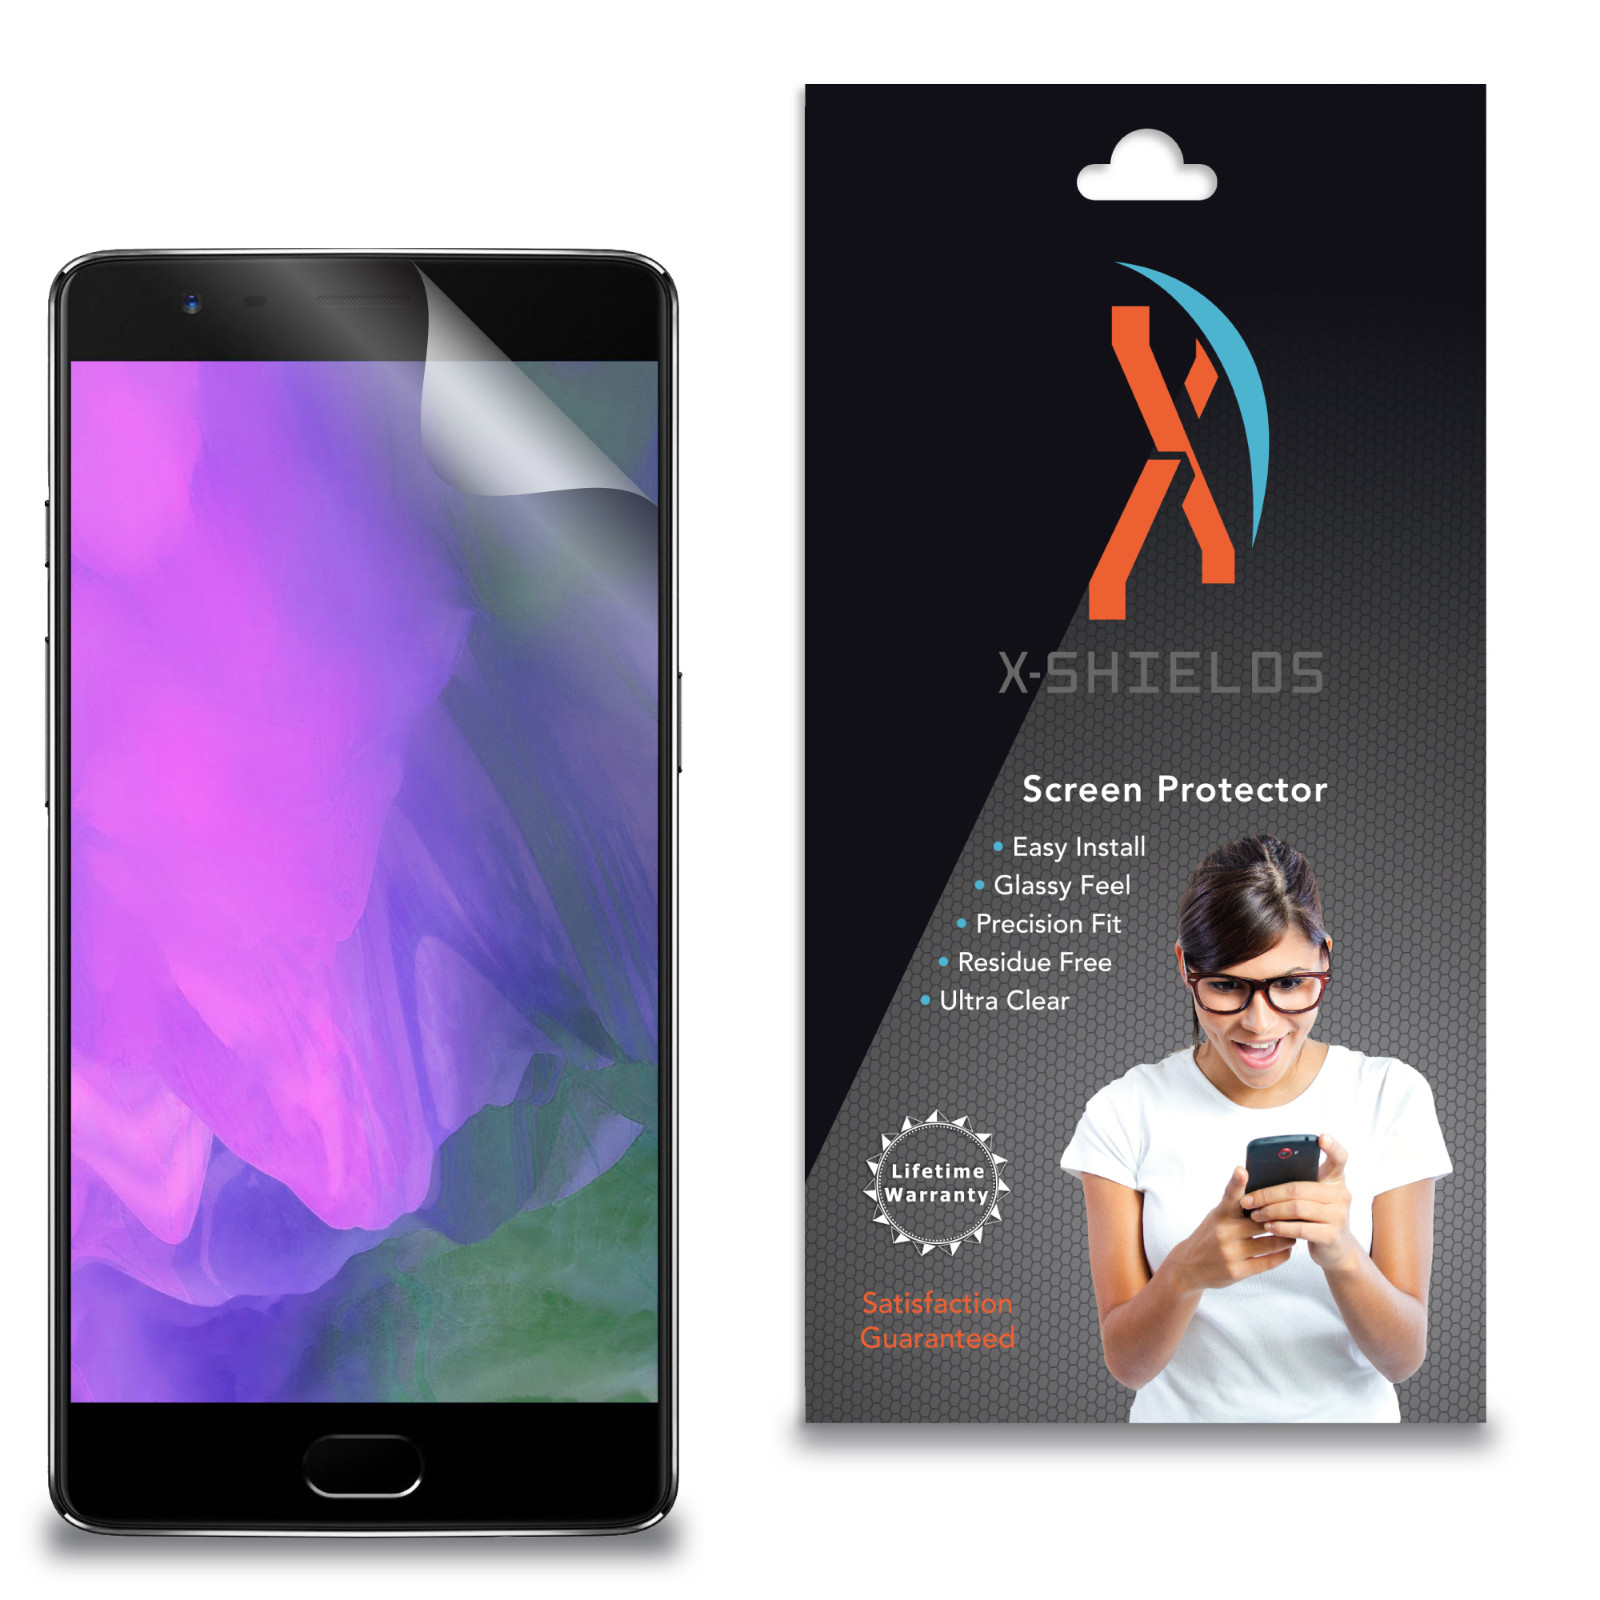 XShields High Definition (HD+) Screen Protectors for OnePlus 5 (Maximum Clarity) Super Easy Installation [3-Pack] Lifetime Warranty